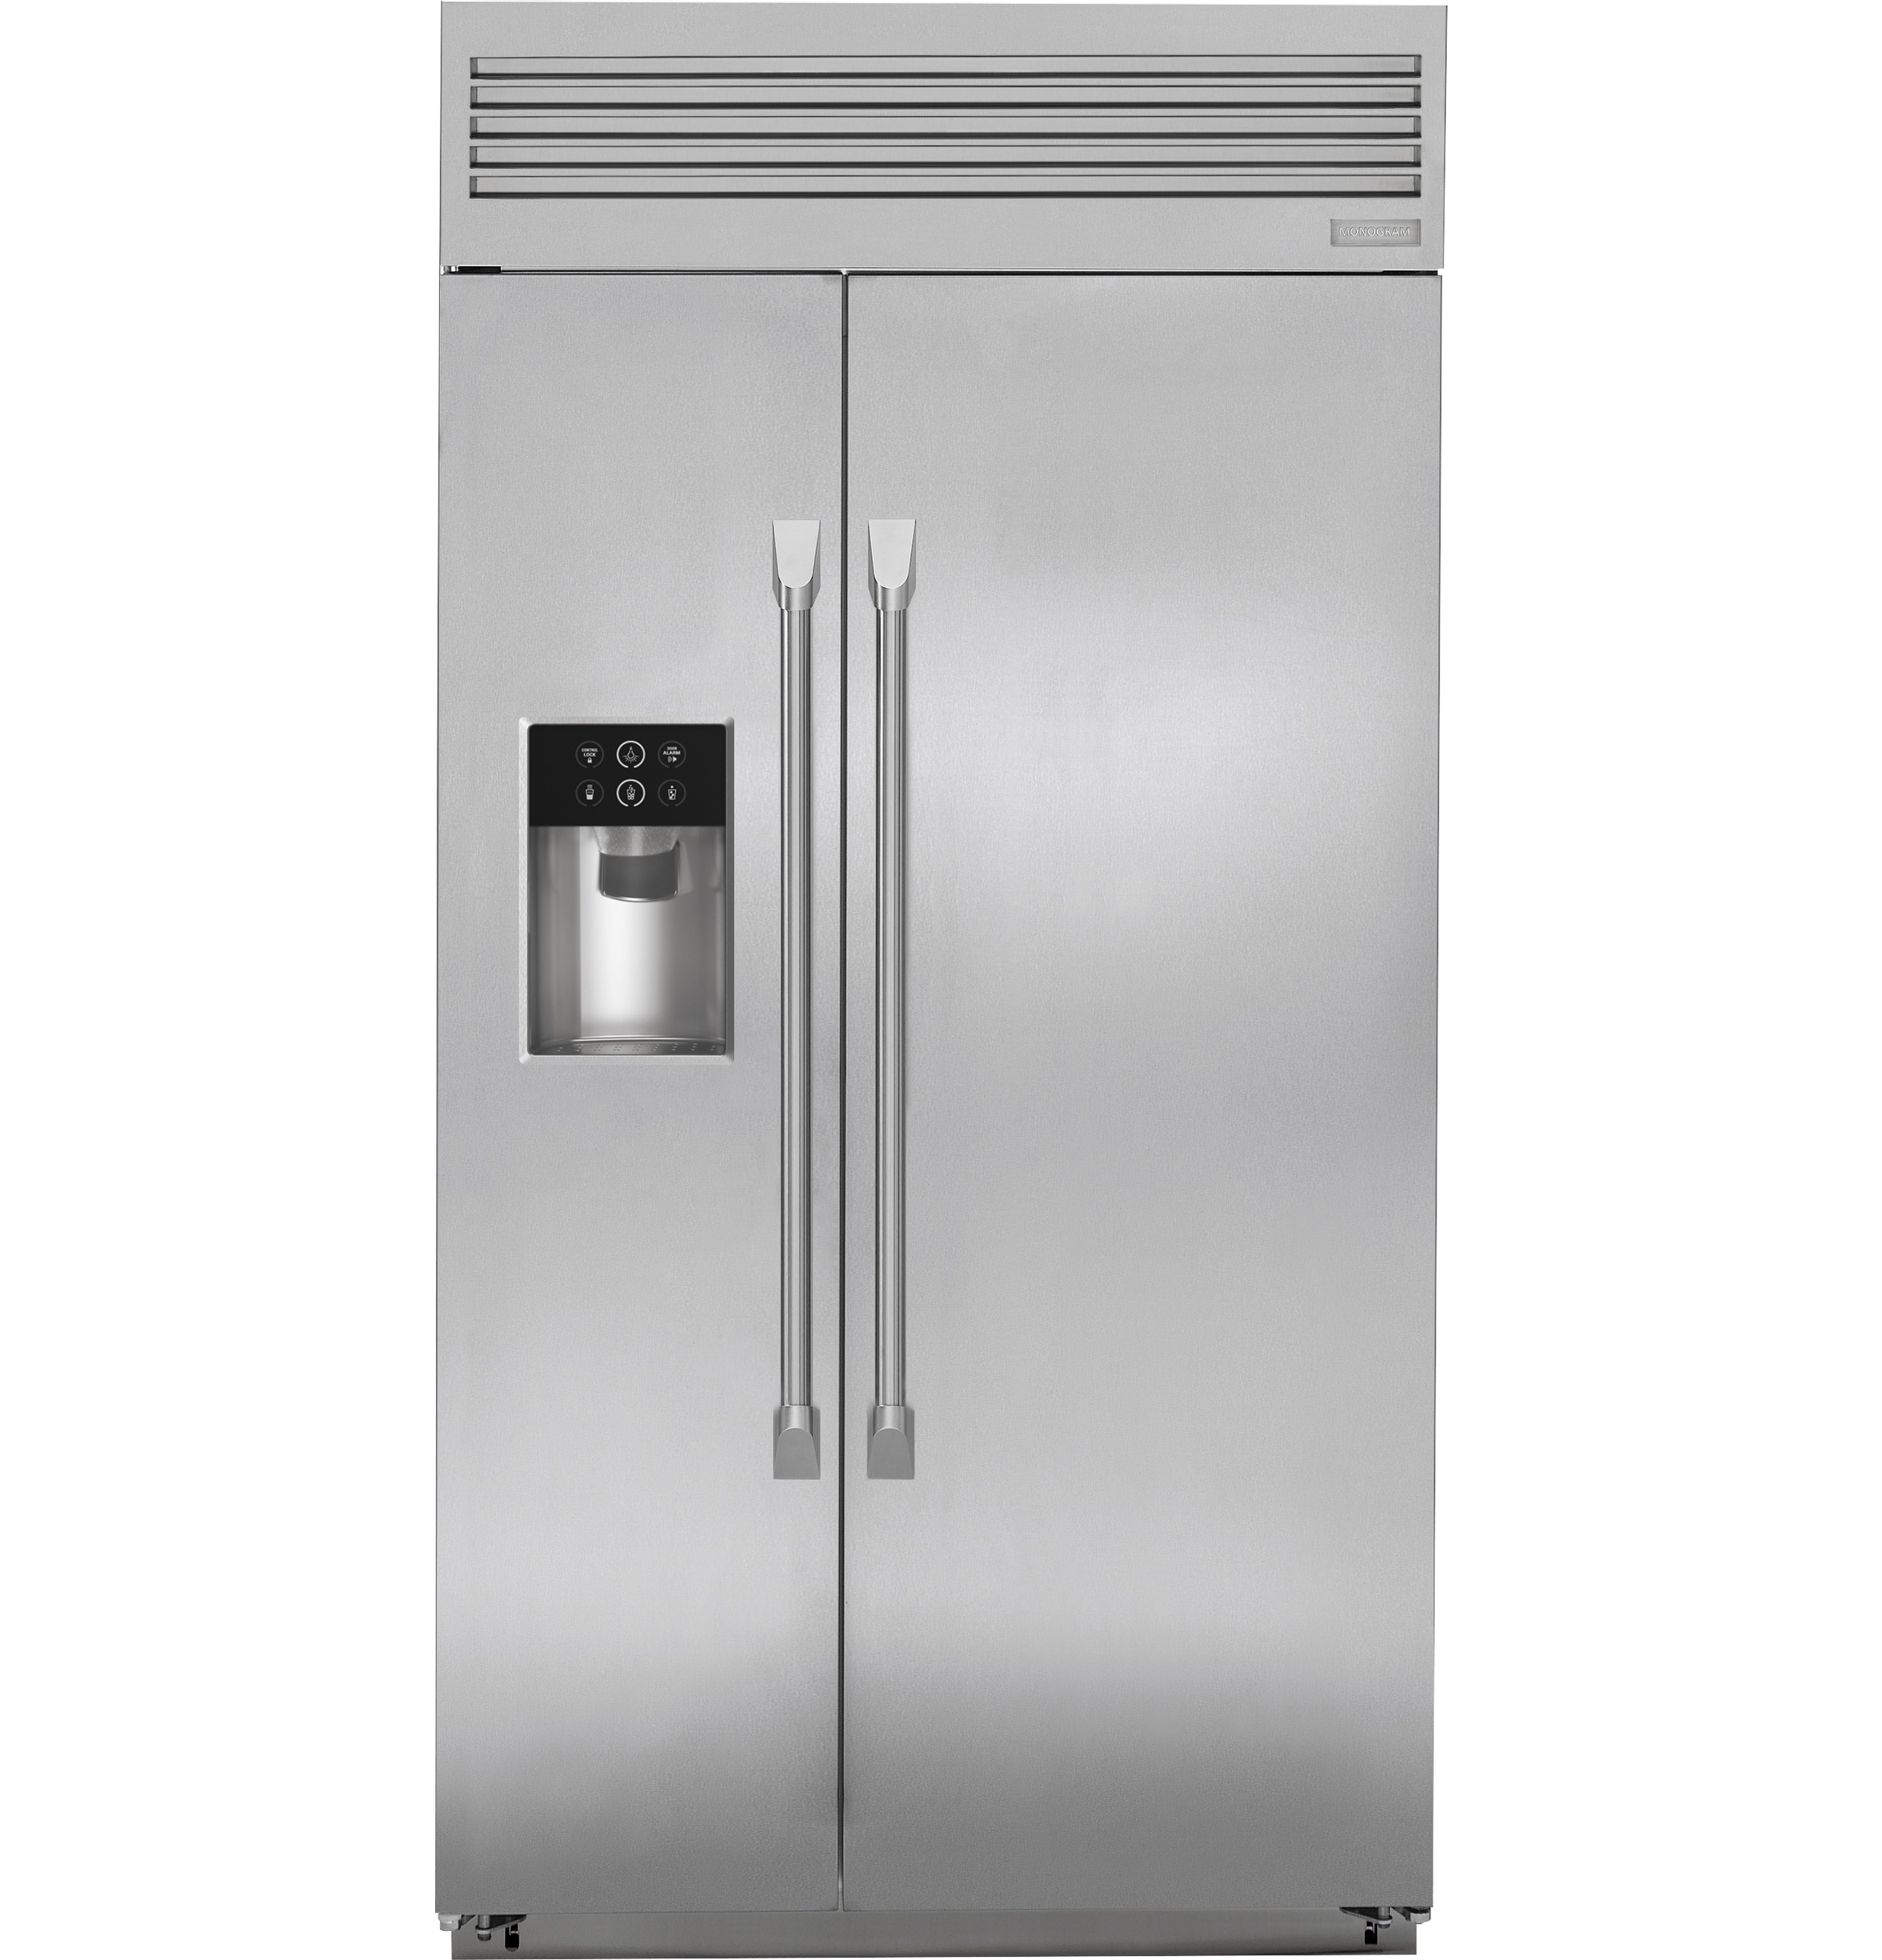 "Monogram Monogram 42"" Smart Built-In Professional Side-by-Side Refrigerator with Dispenser"